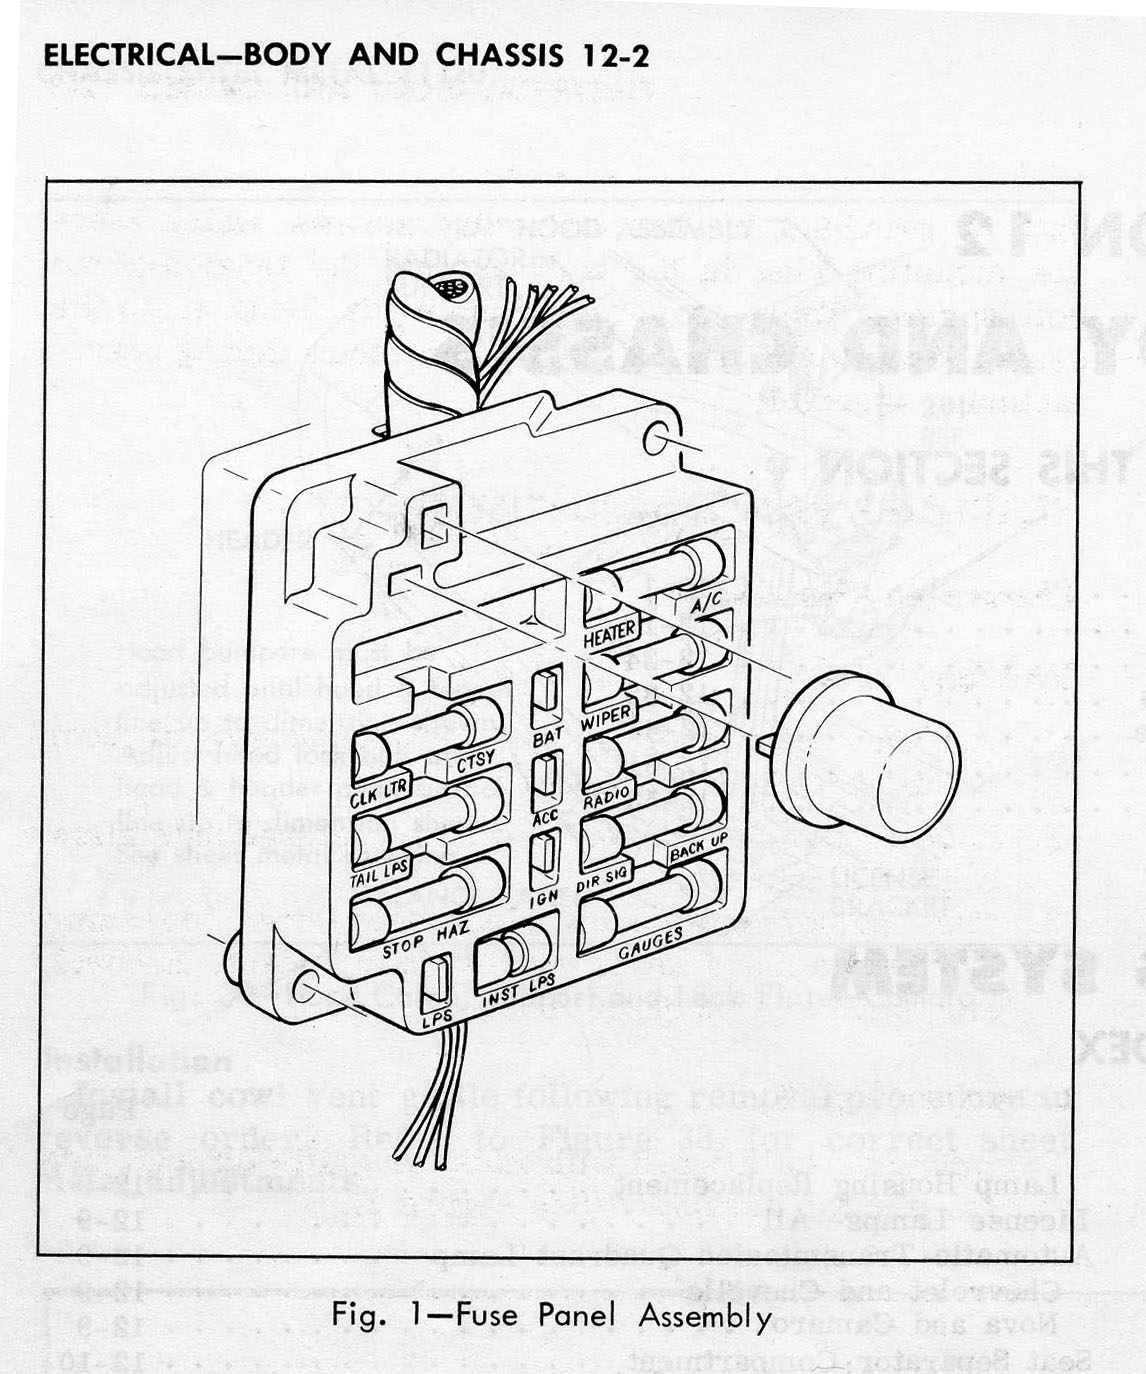 [DIAGRAM] 1970 Chevy C10 Blower Motor Wiring Diagram FULL